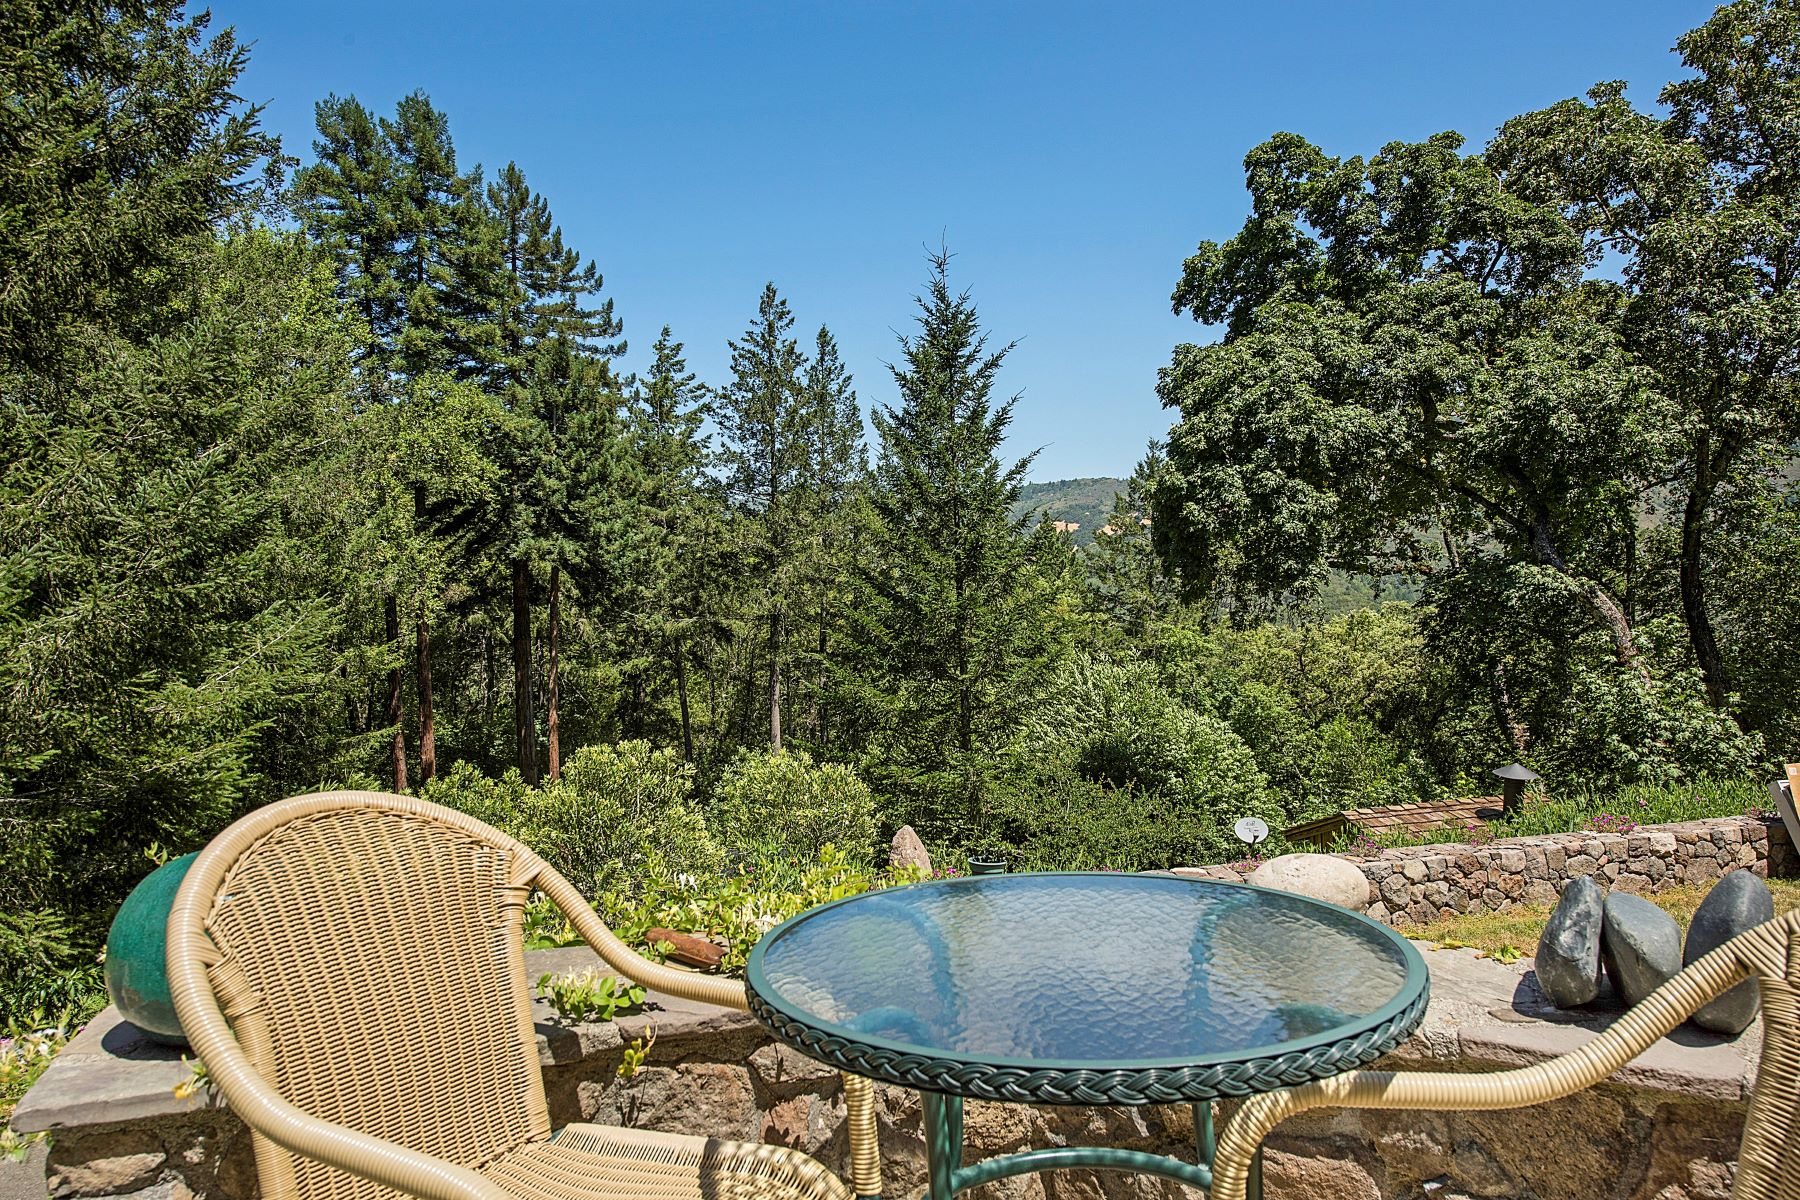 Single Family Home for Sale at Vista Norte Napa Valley 6560 Dry Creek Road Napa, California, 94558 United States